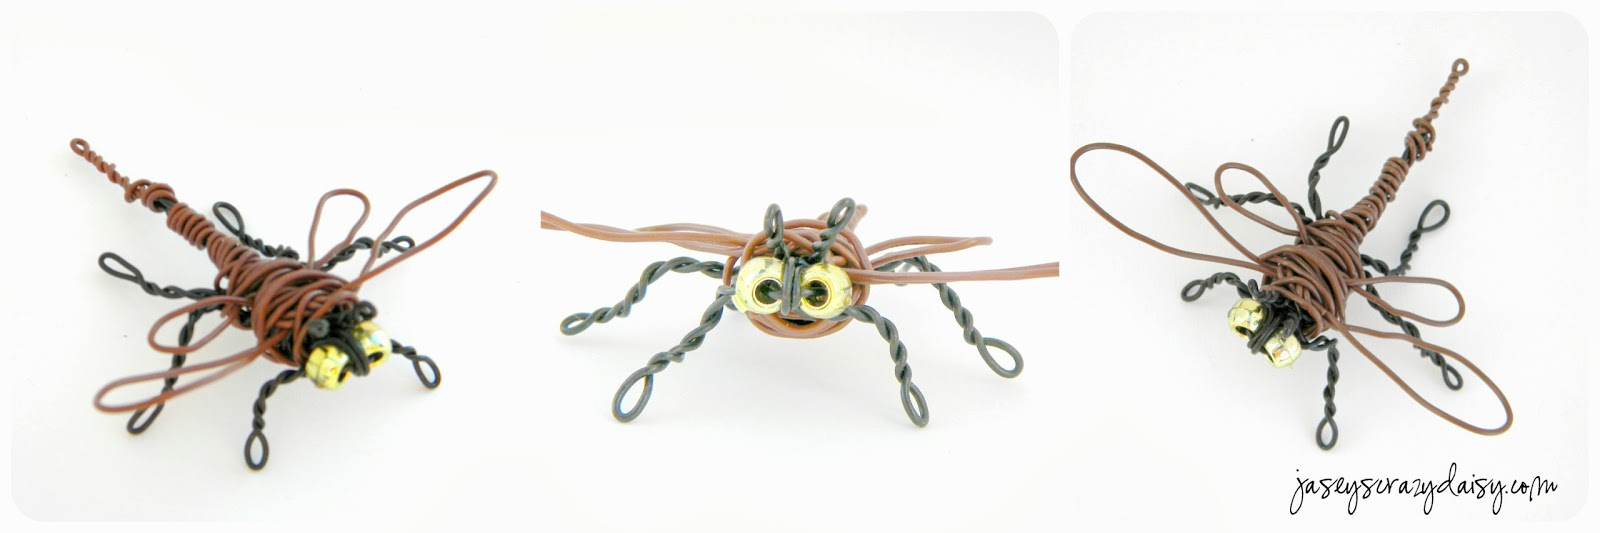 Art project for kids wire sculptures with twisteez wire for Very simple wire craft projects